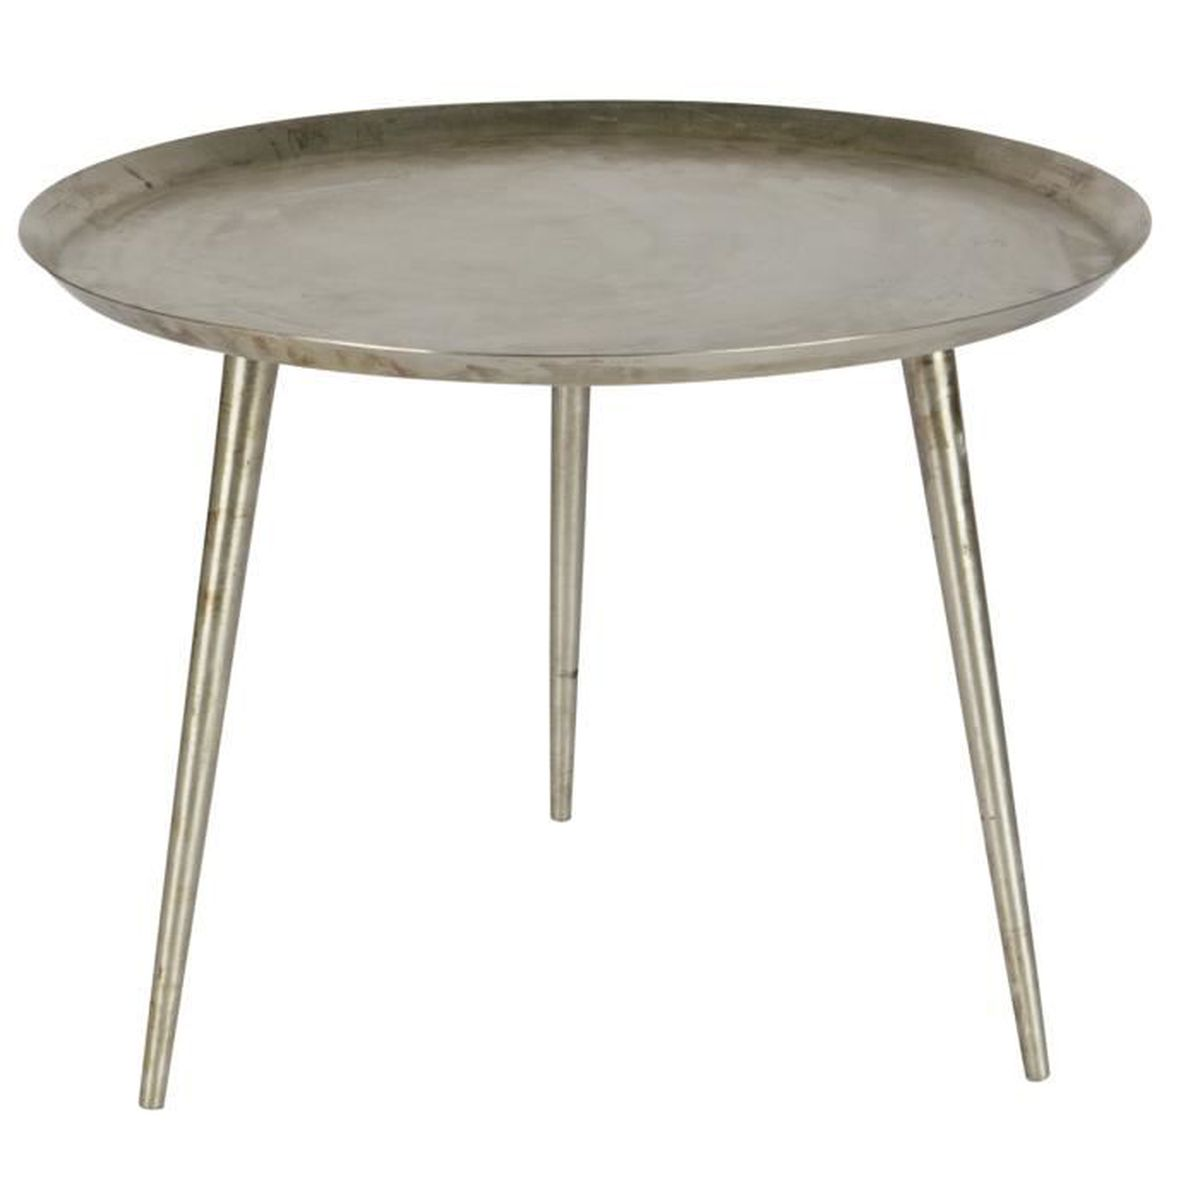 Table d appoint argent achat vente table d appoint for Table d appoint moderne